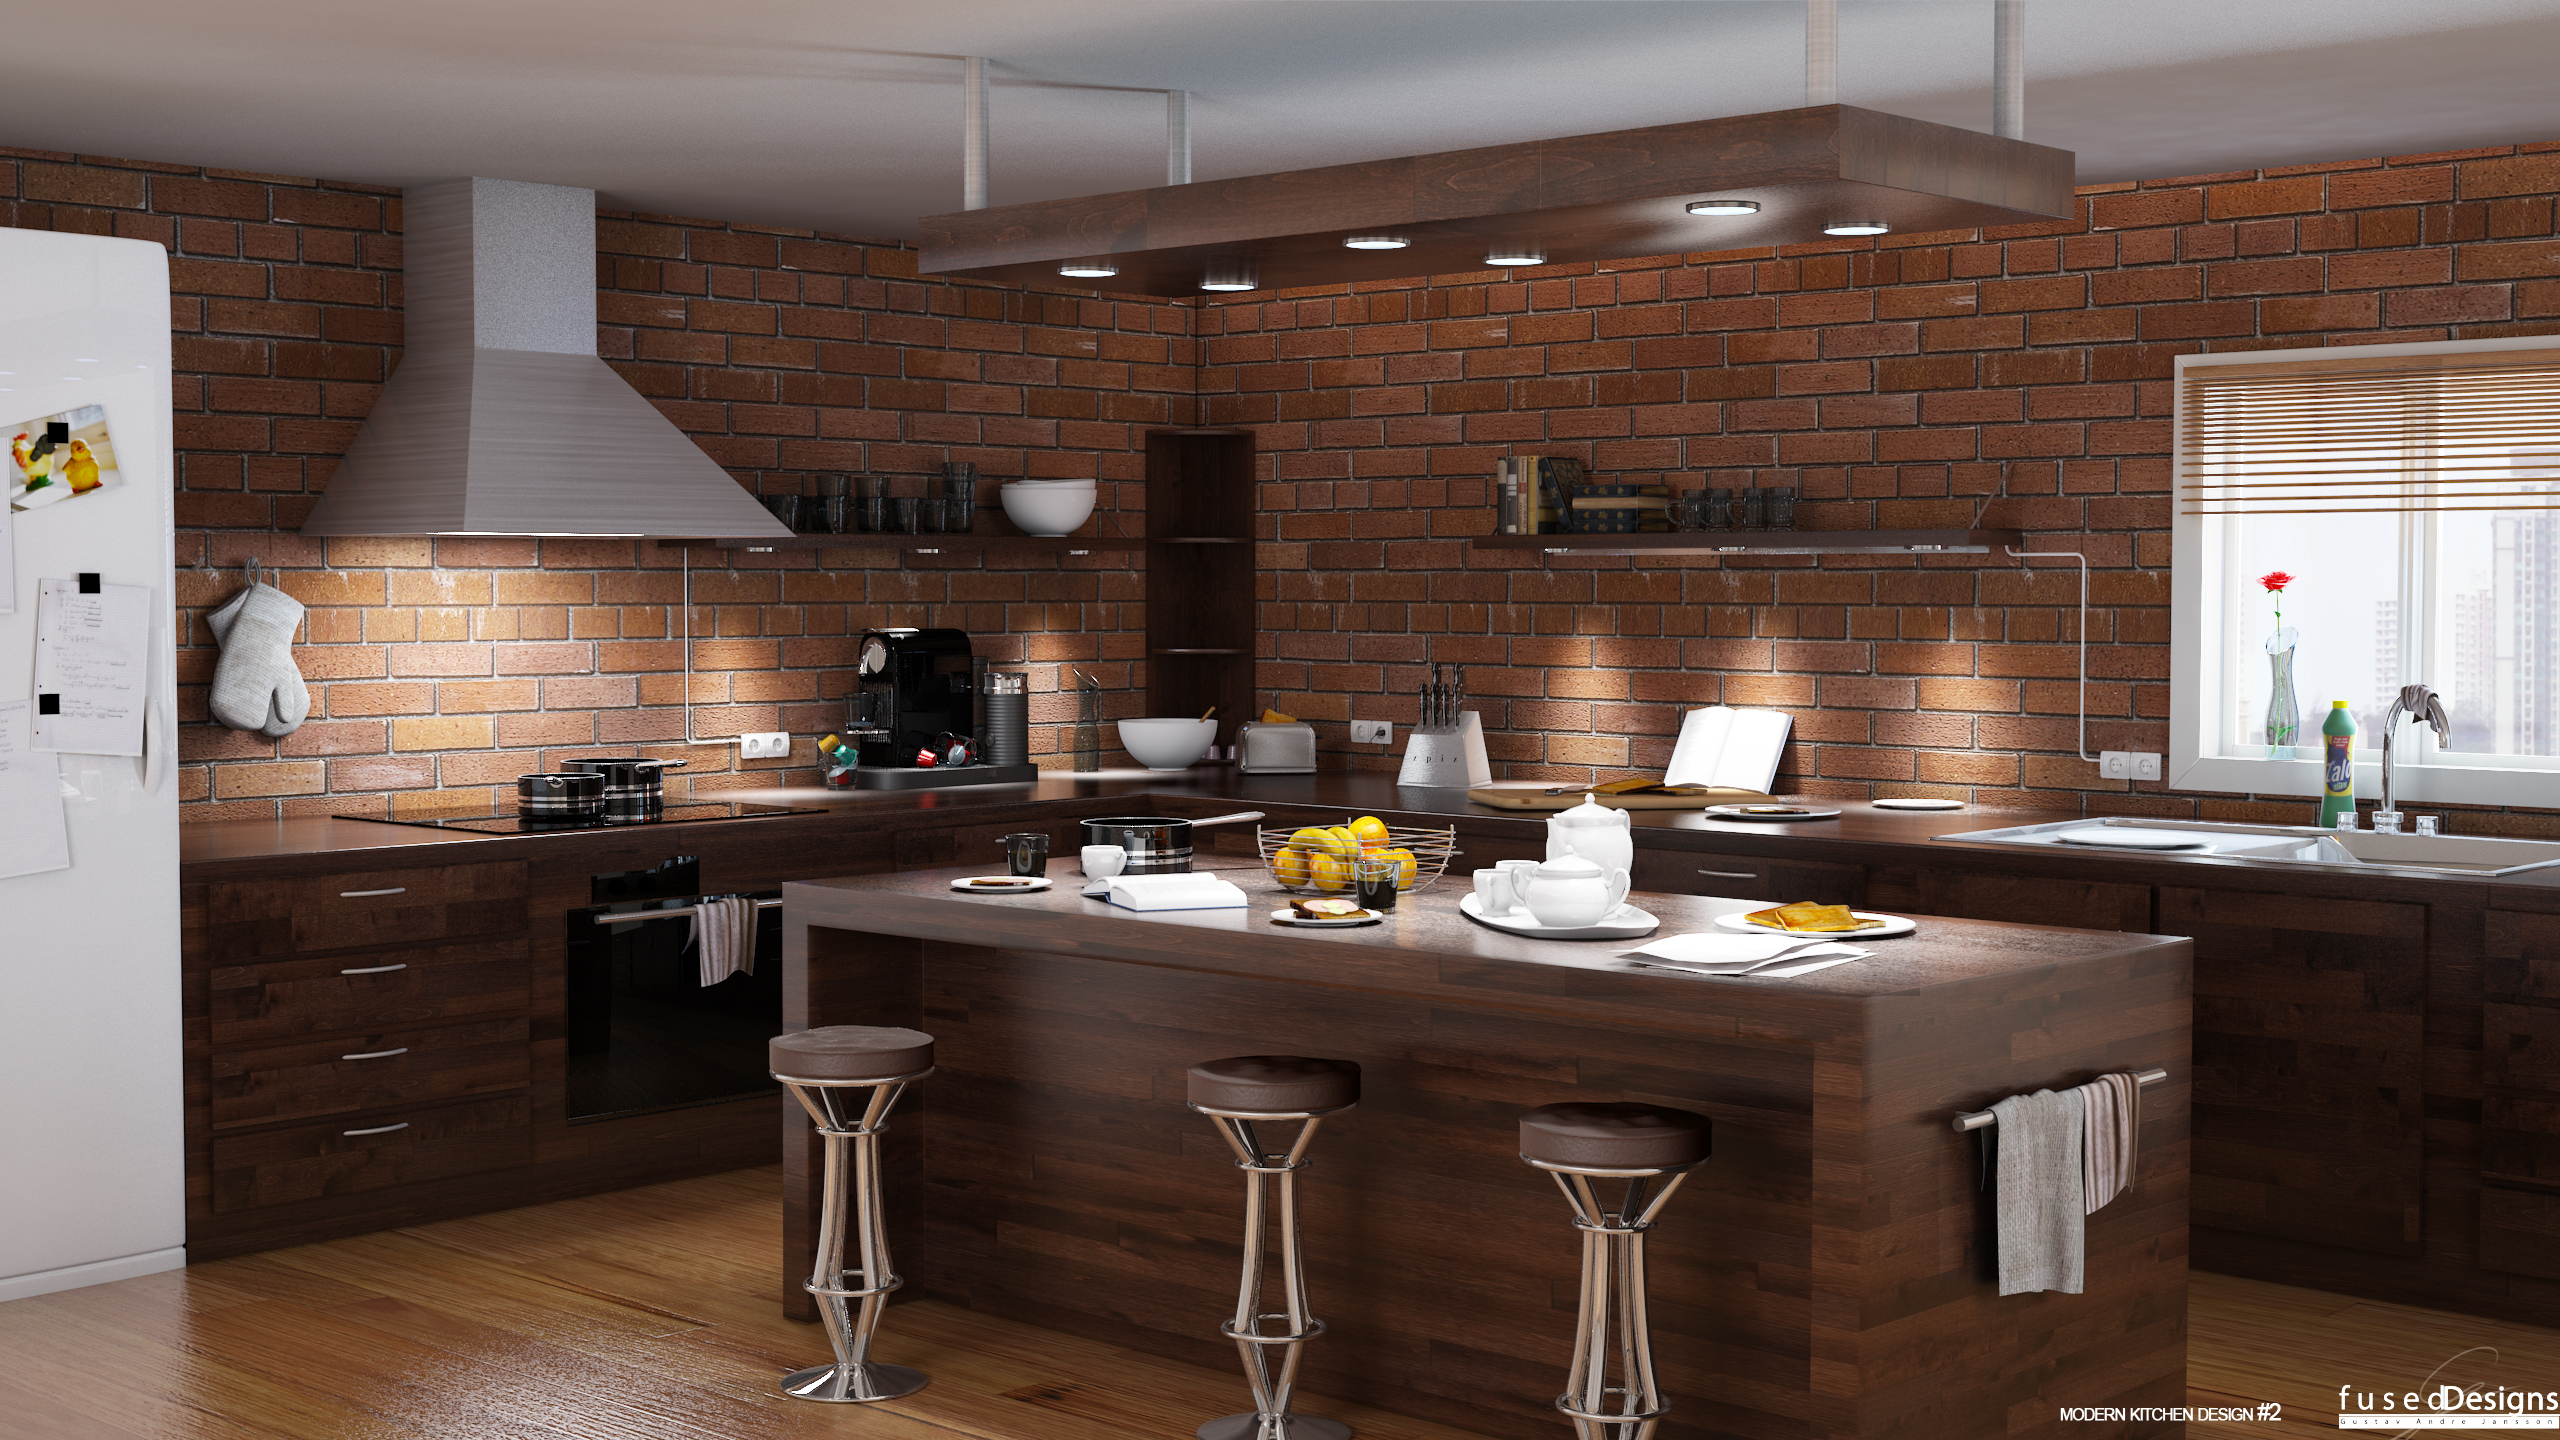 kitchen design tumblr chapter 57 me against the world finishes 787